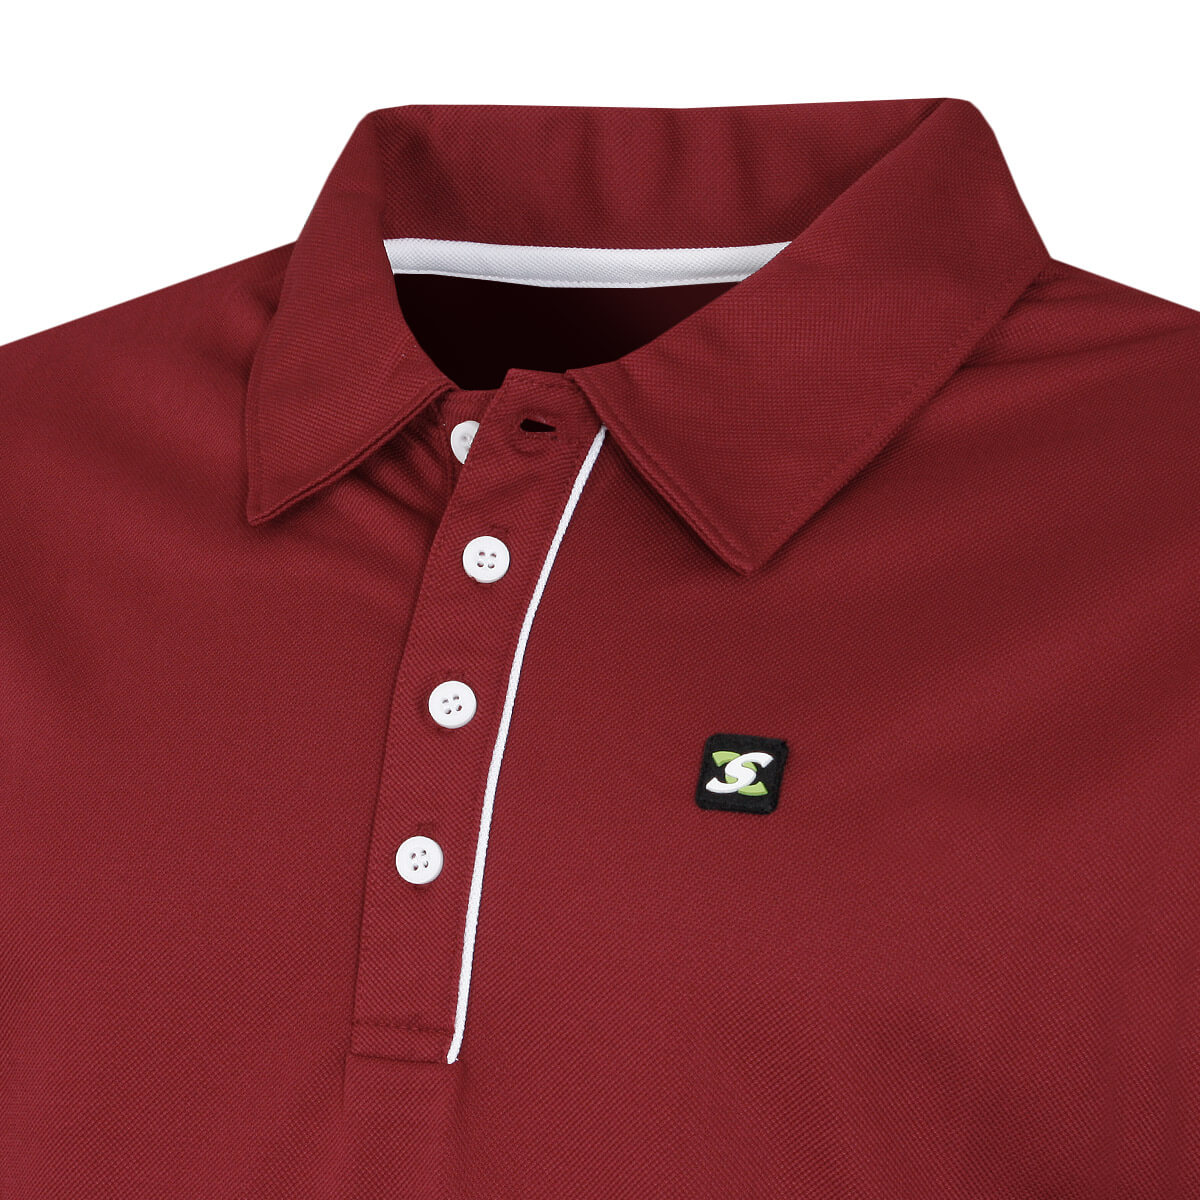 Stuburt-Mens-Urban-Long-Sleeve-Wicking-Breathable-Golf-Polo-Shirt-33-OFF-RRP thumbnail 9